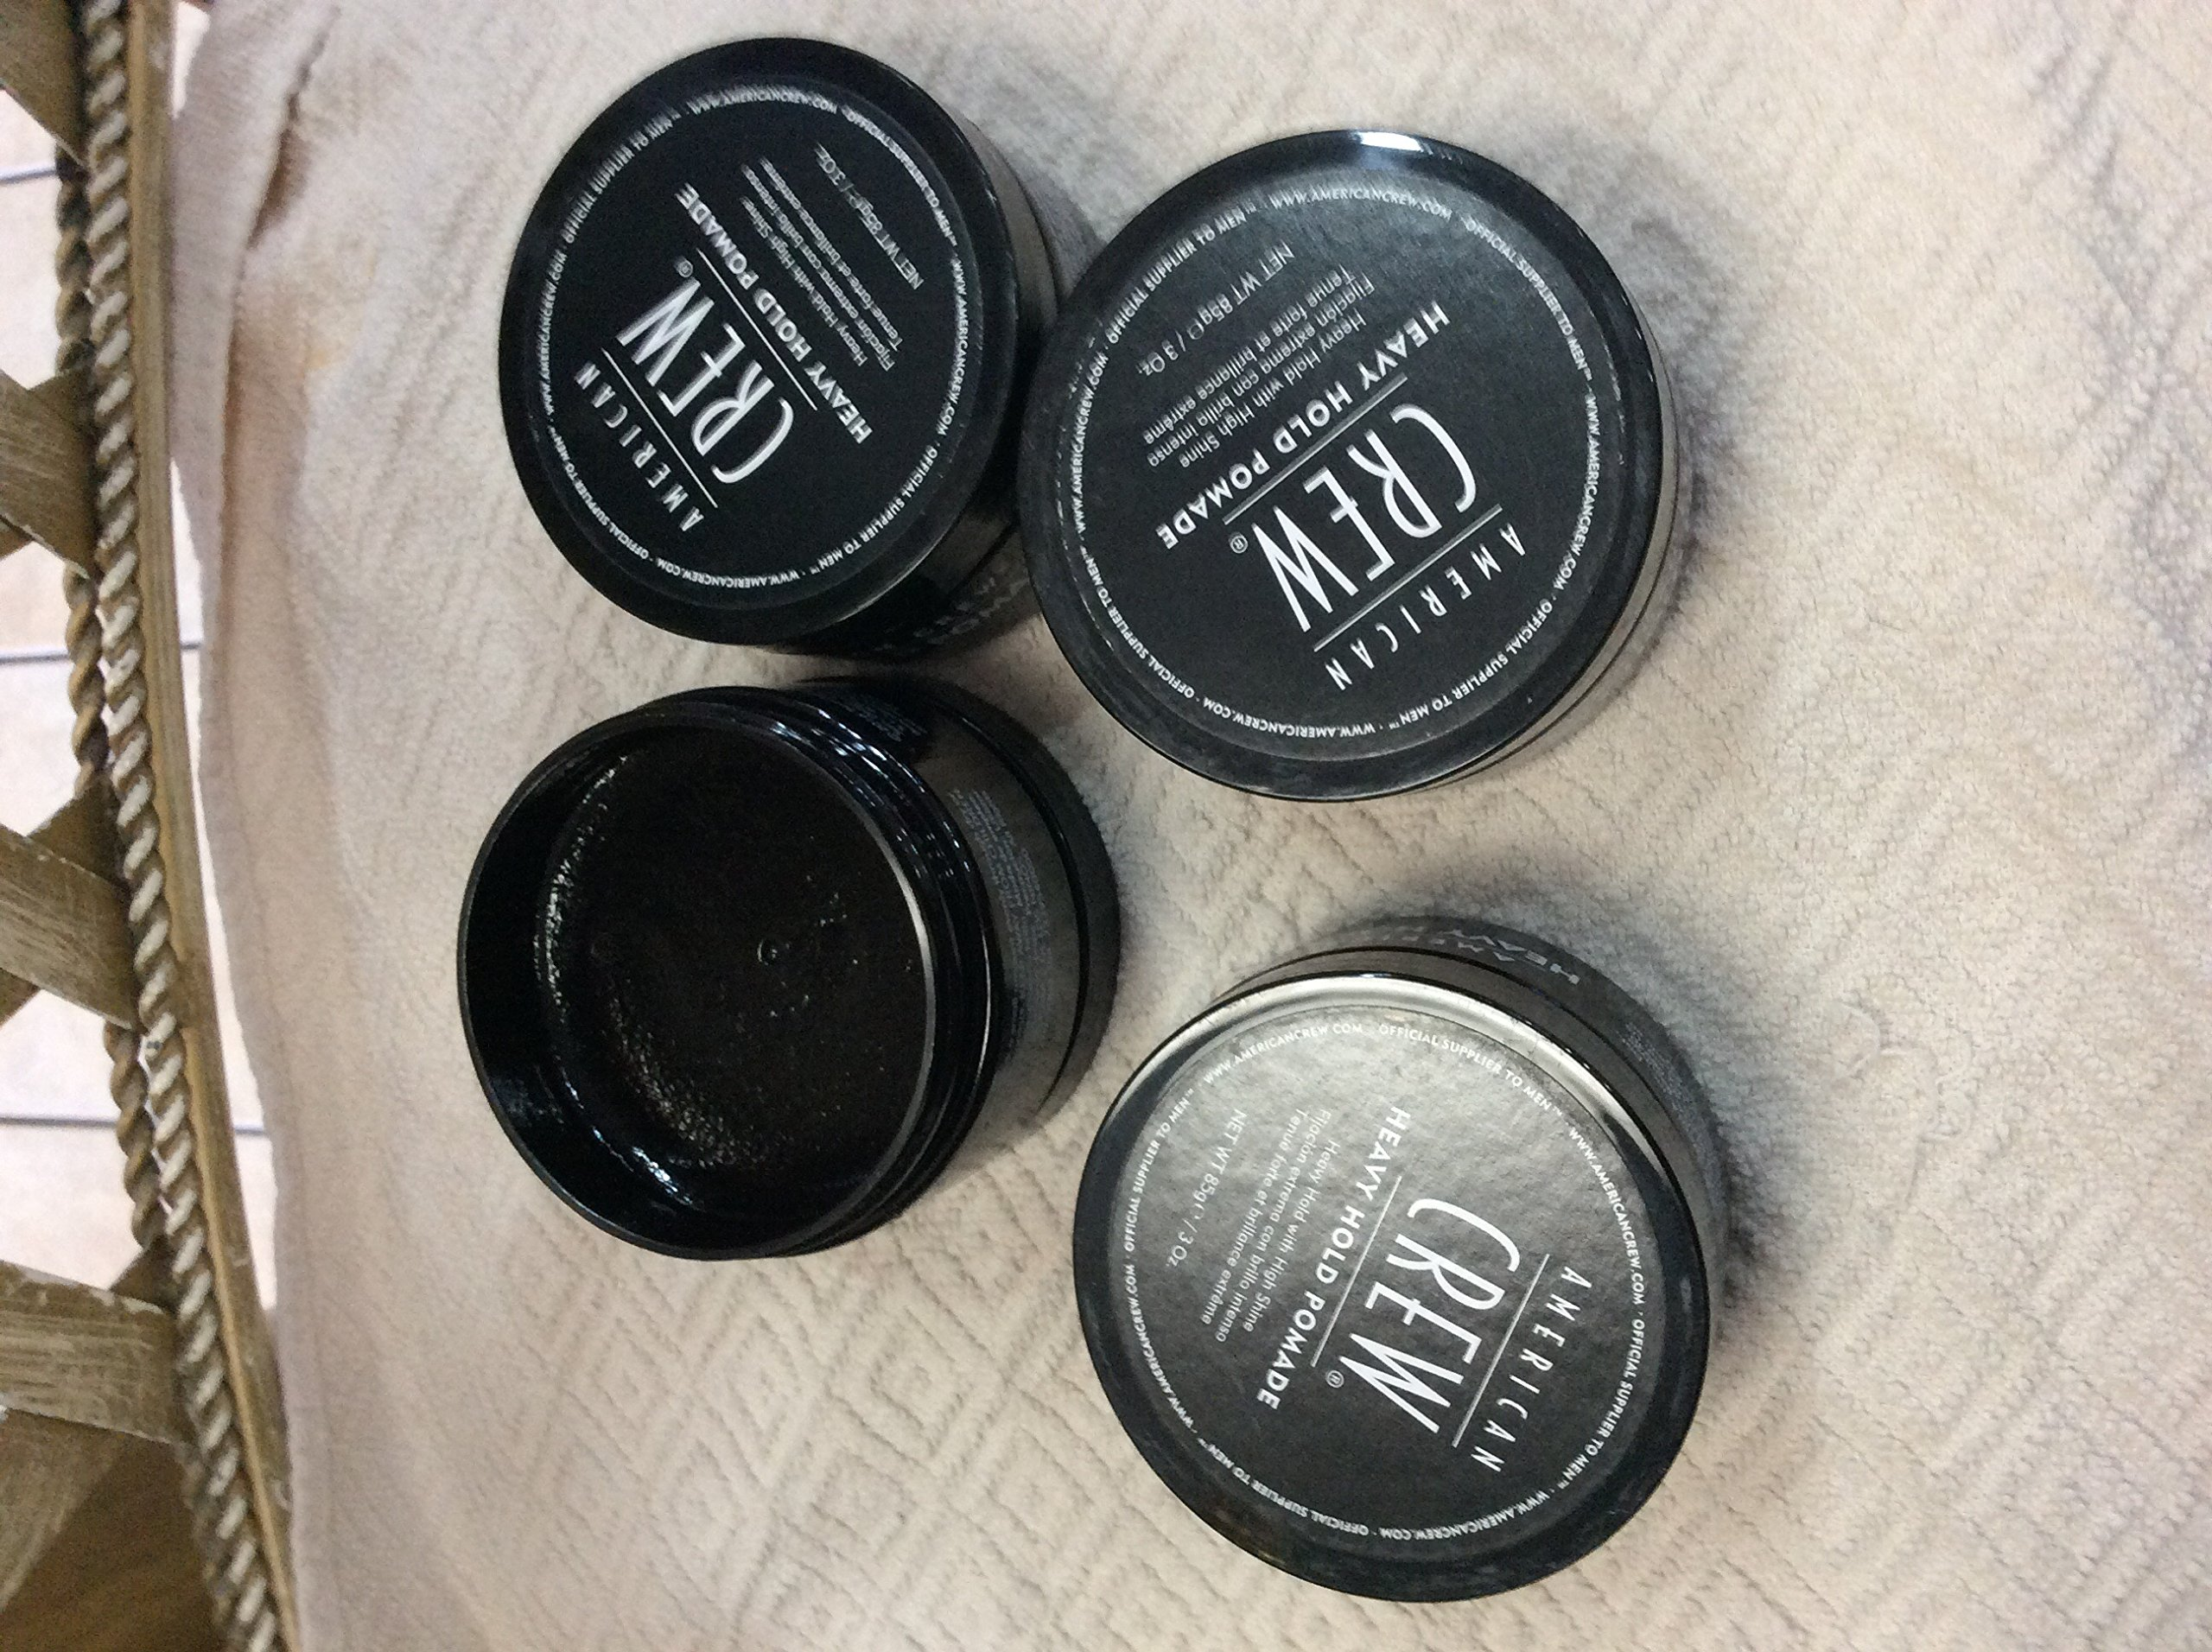 American Crew Heavy Hold Pomade (4 pack) 3 oz/each by AMERICAN CREW